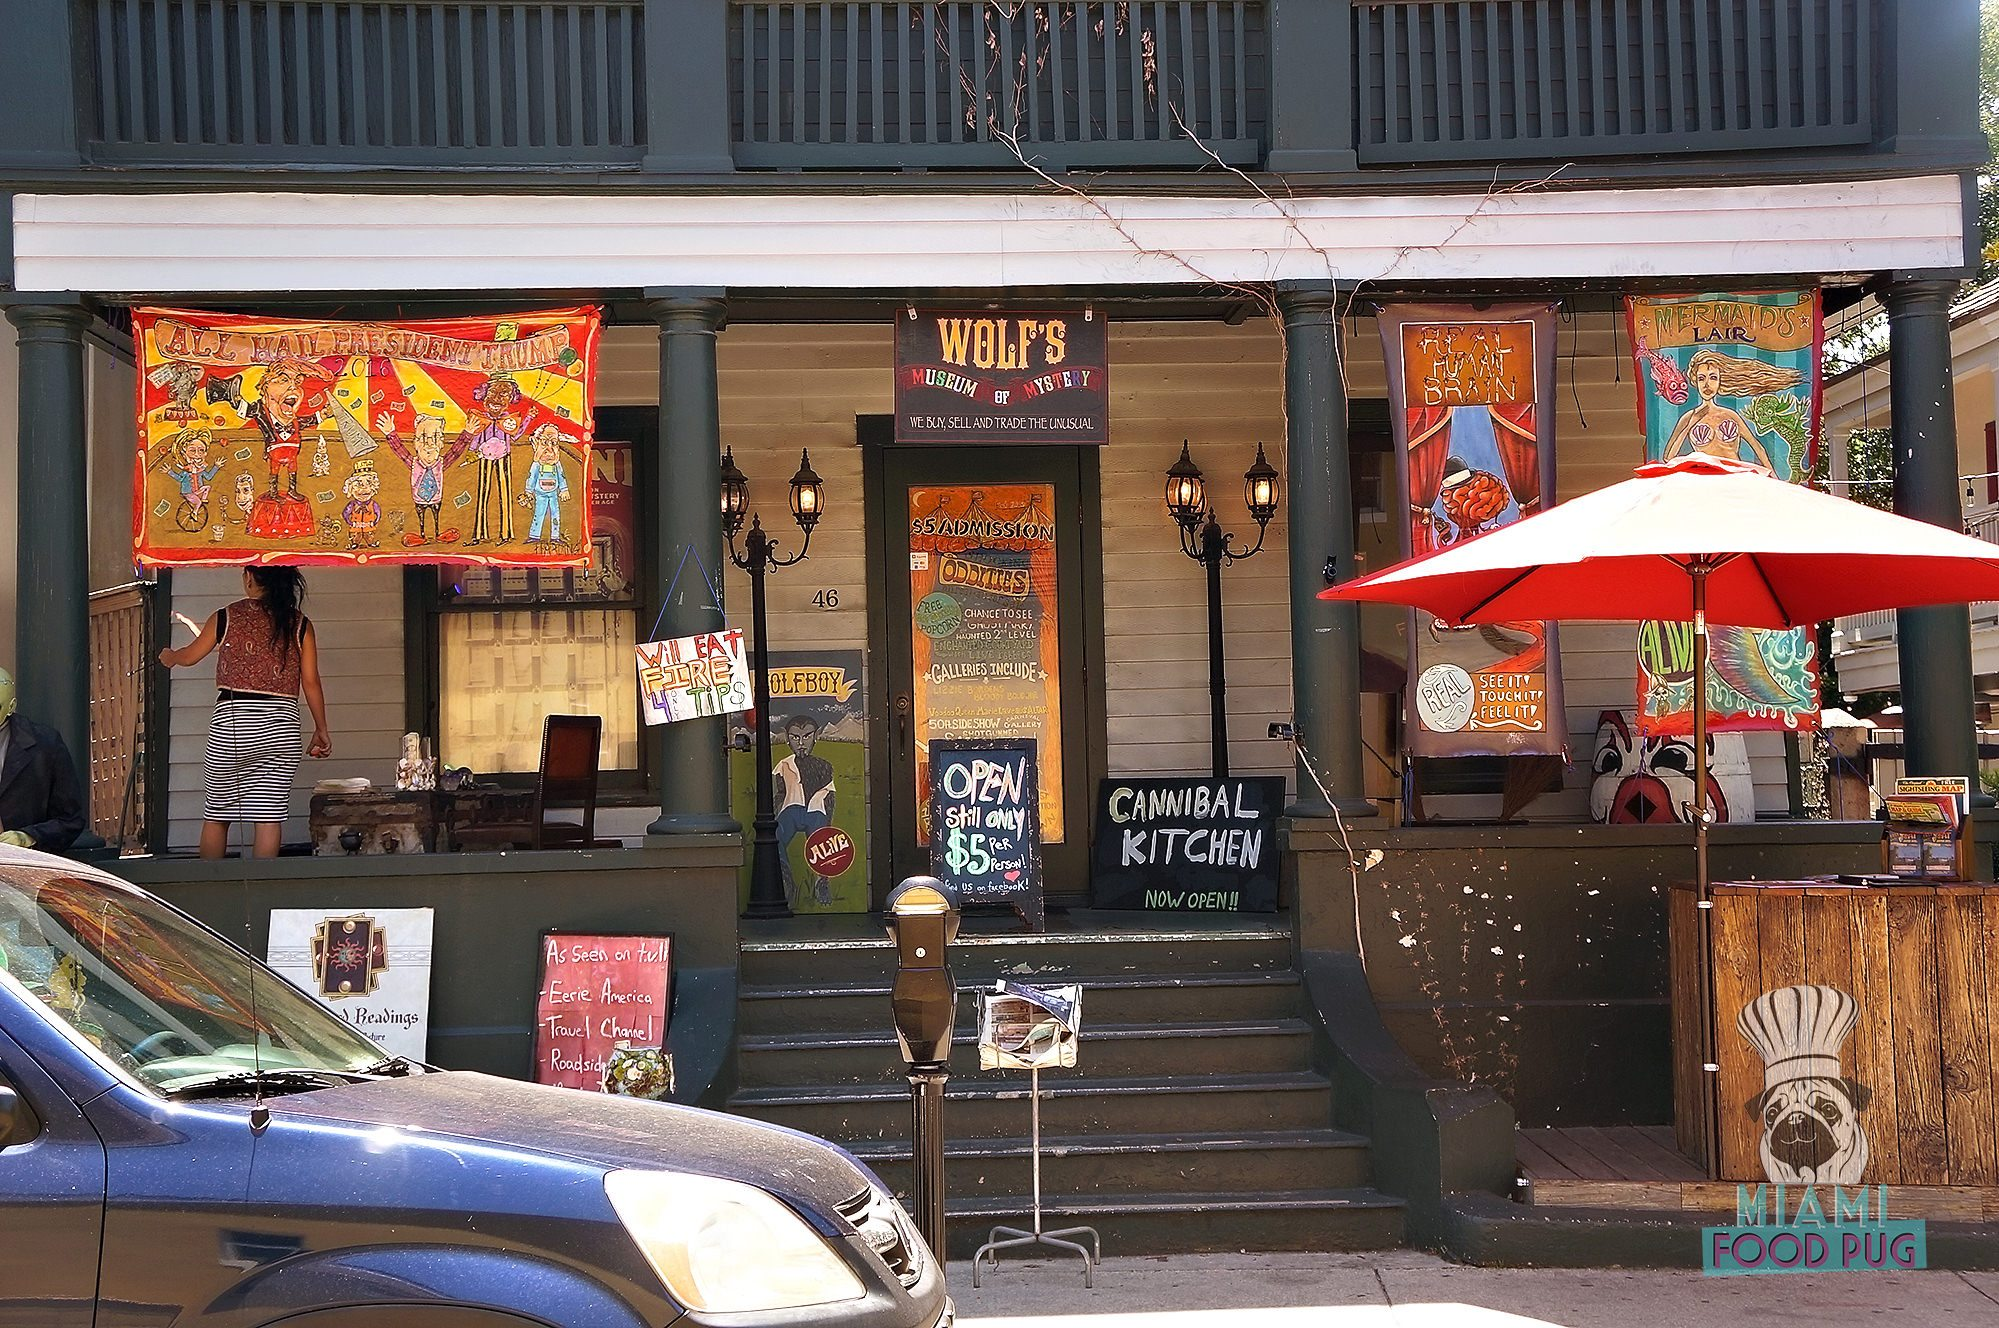 mfp destinations a guide to st augustine miami food pug